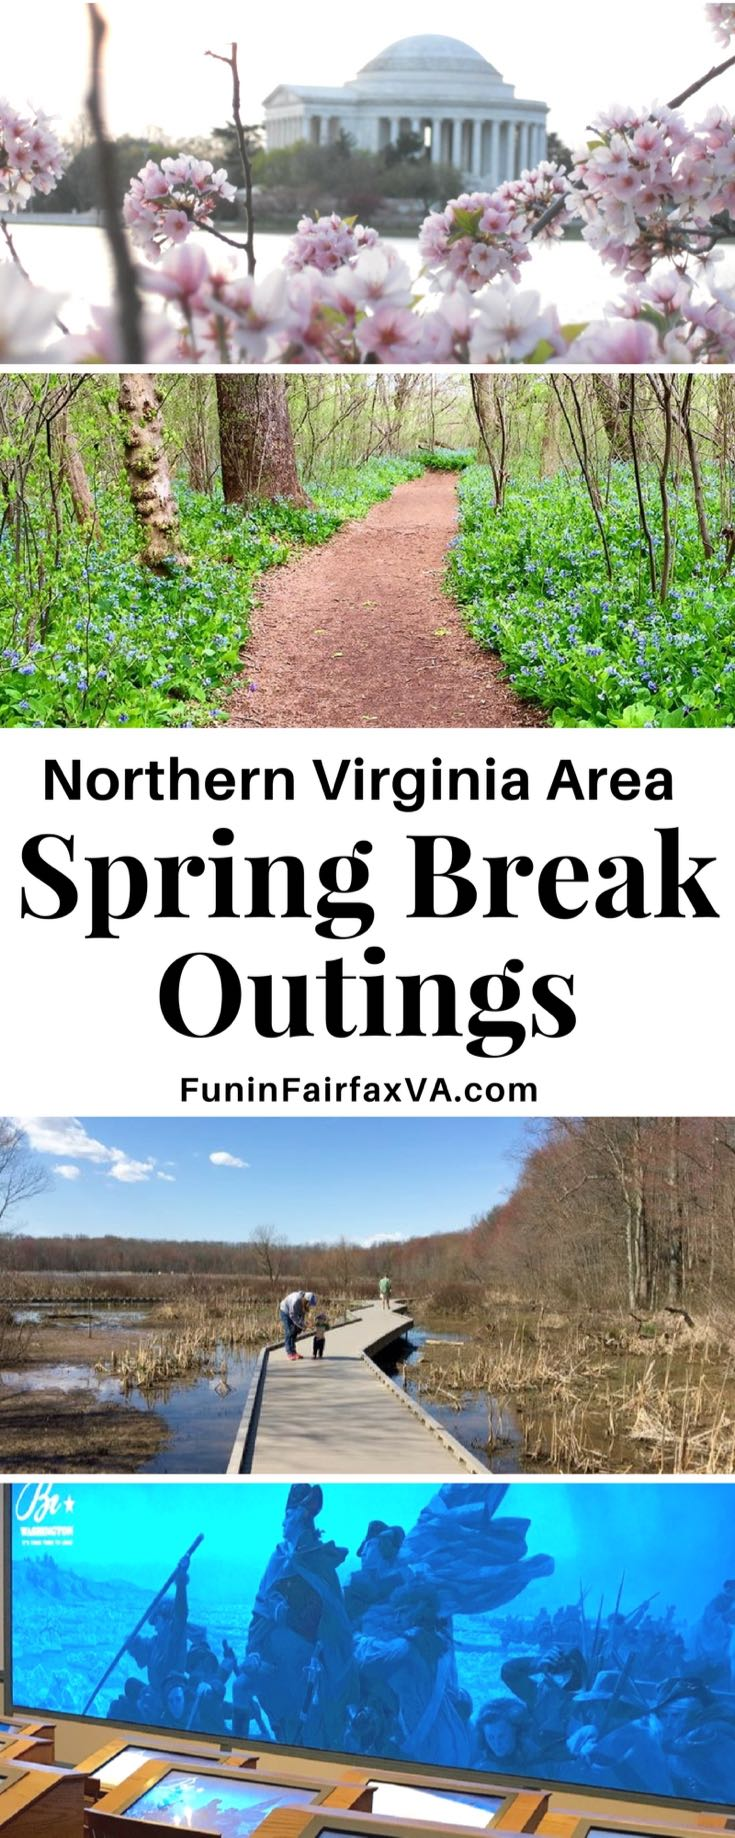 Spring break outings in the Northern Virginia area that don't need reservations, tickets, or a lot of planning, perfect for spring break or a no school day.